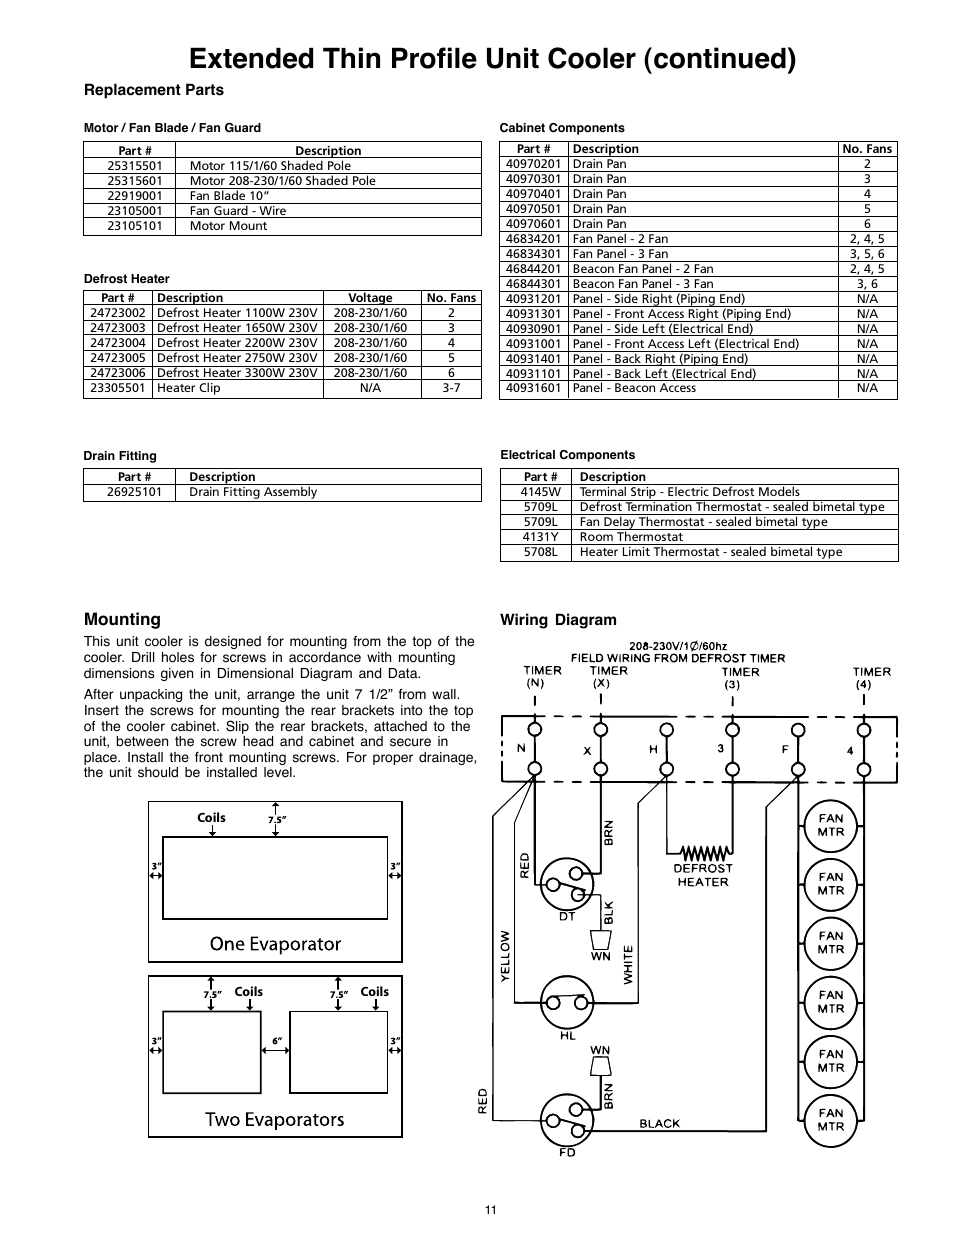 defrost termination switch wiring annavernon defrost termination fan delay switch wiring diagram solidfonts